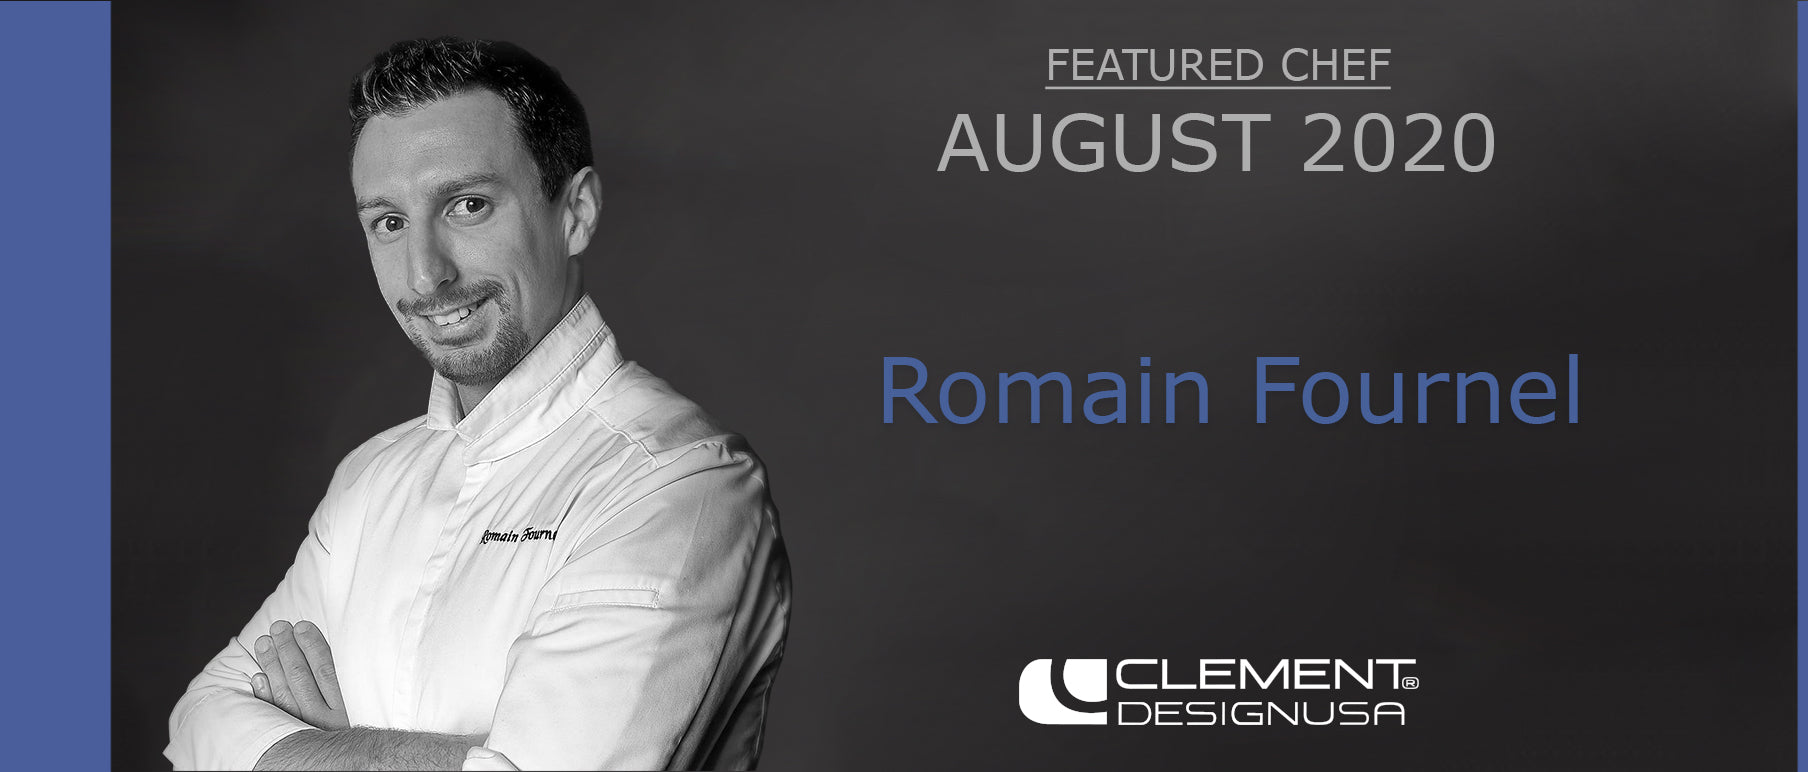 August 2020 Featured Chef: Romain Fournel